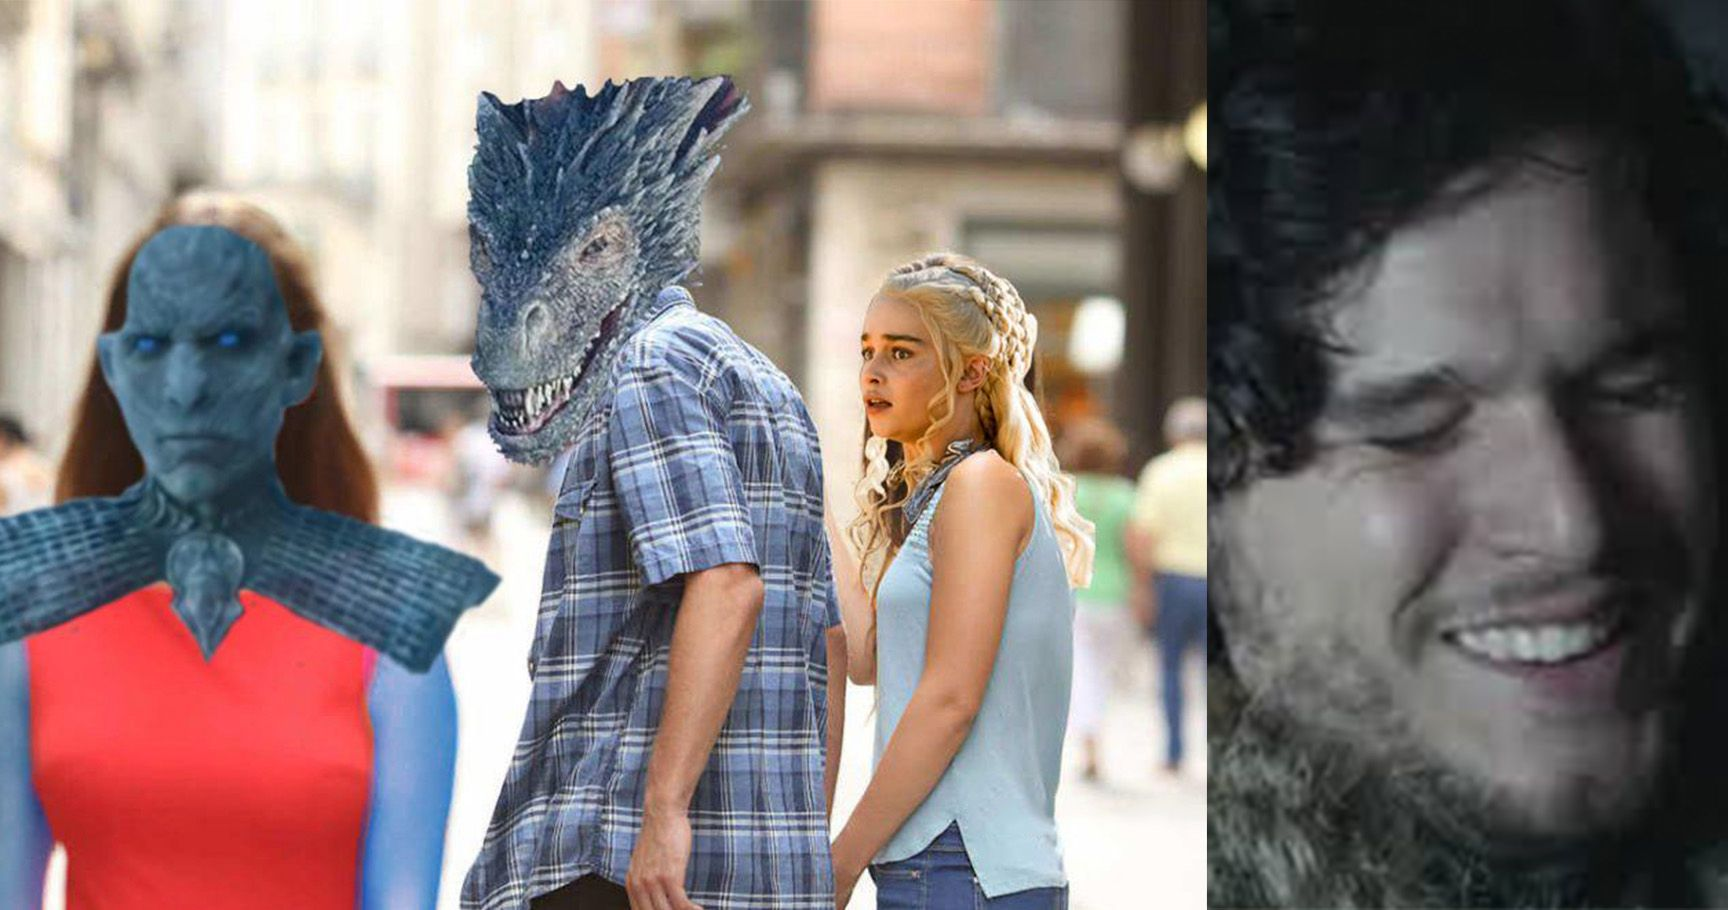 15 Hilarious White Walker Memes That Made Us Want To Switch Sides